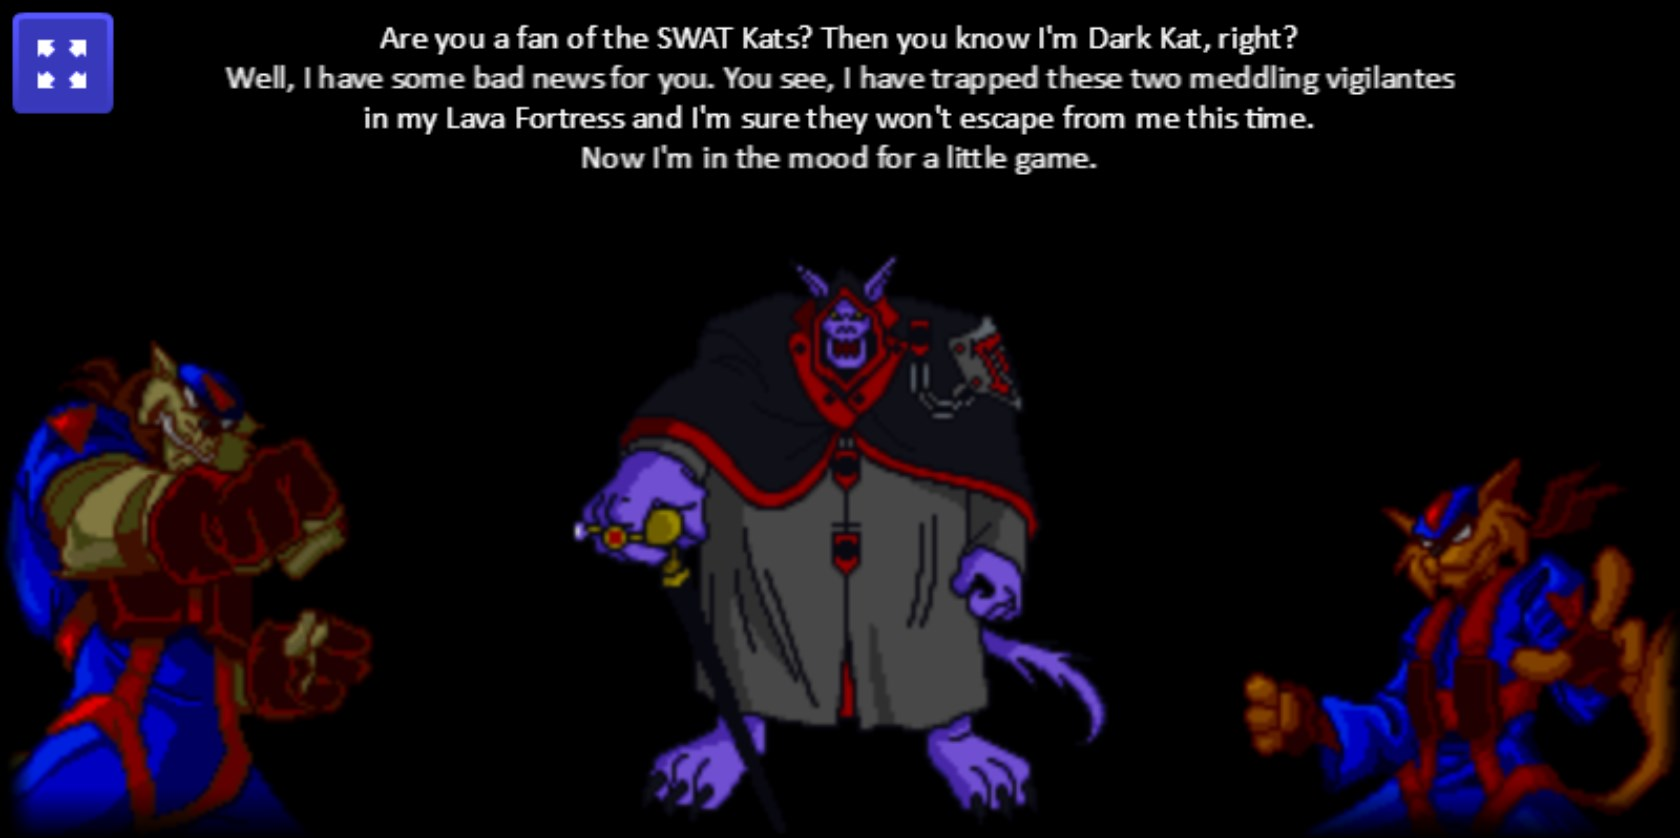 screenshot-dark-kat.jpg